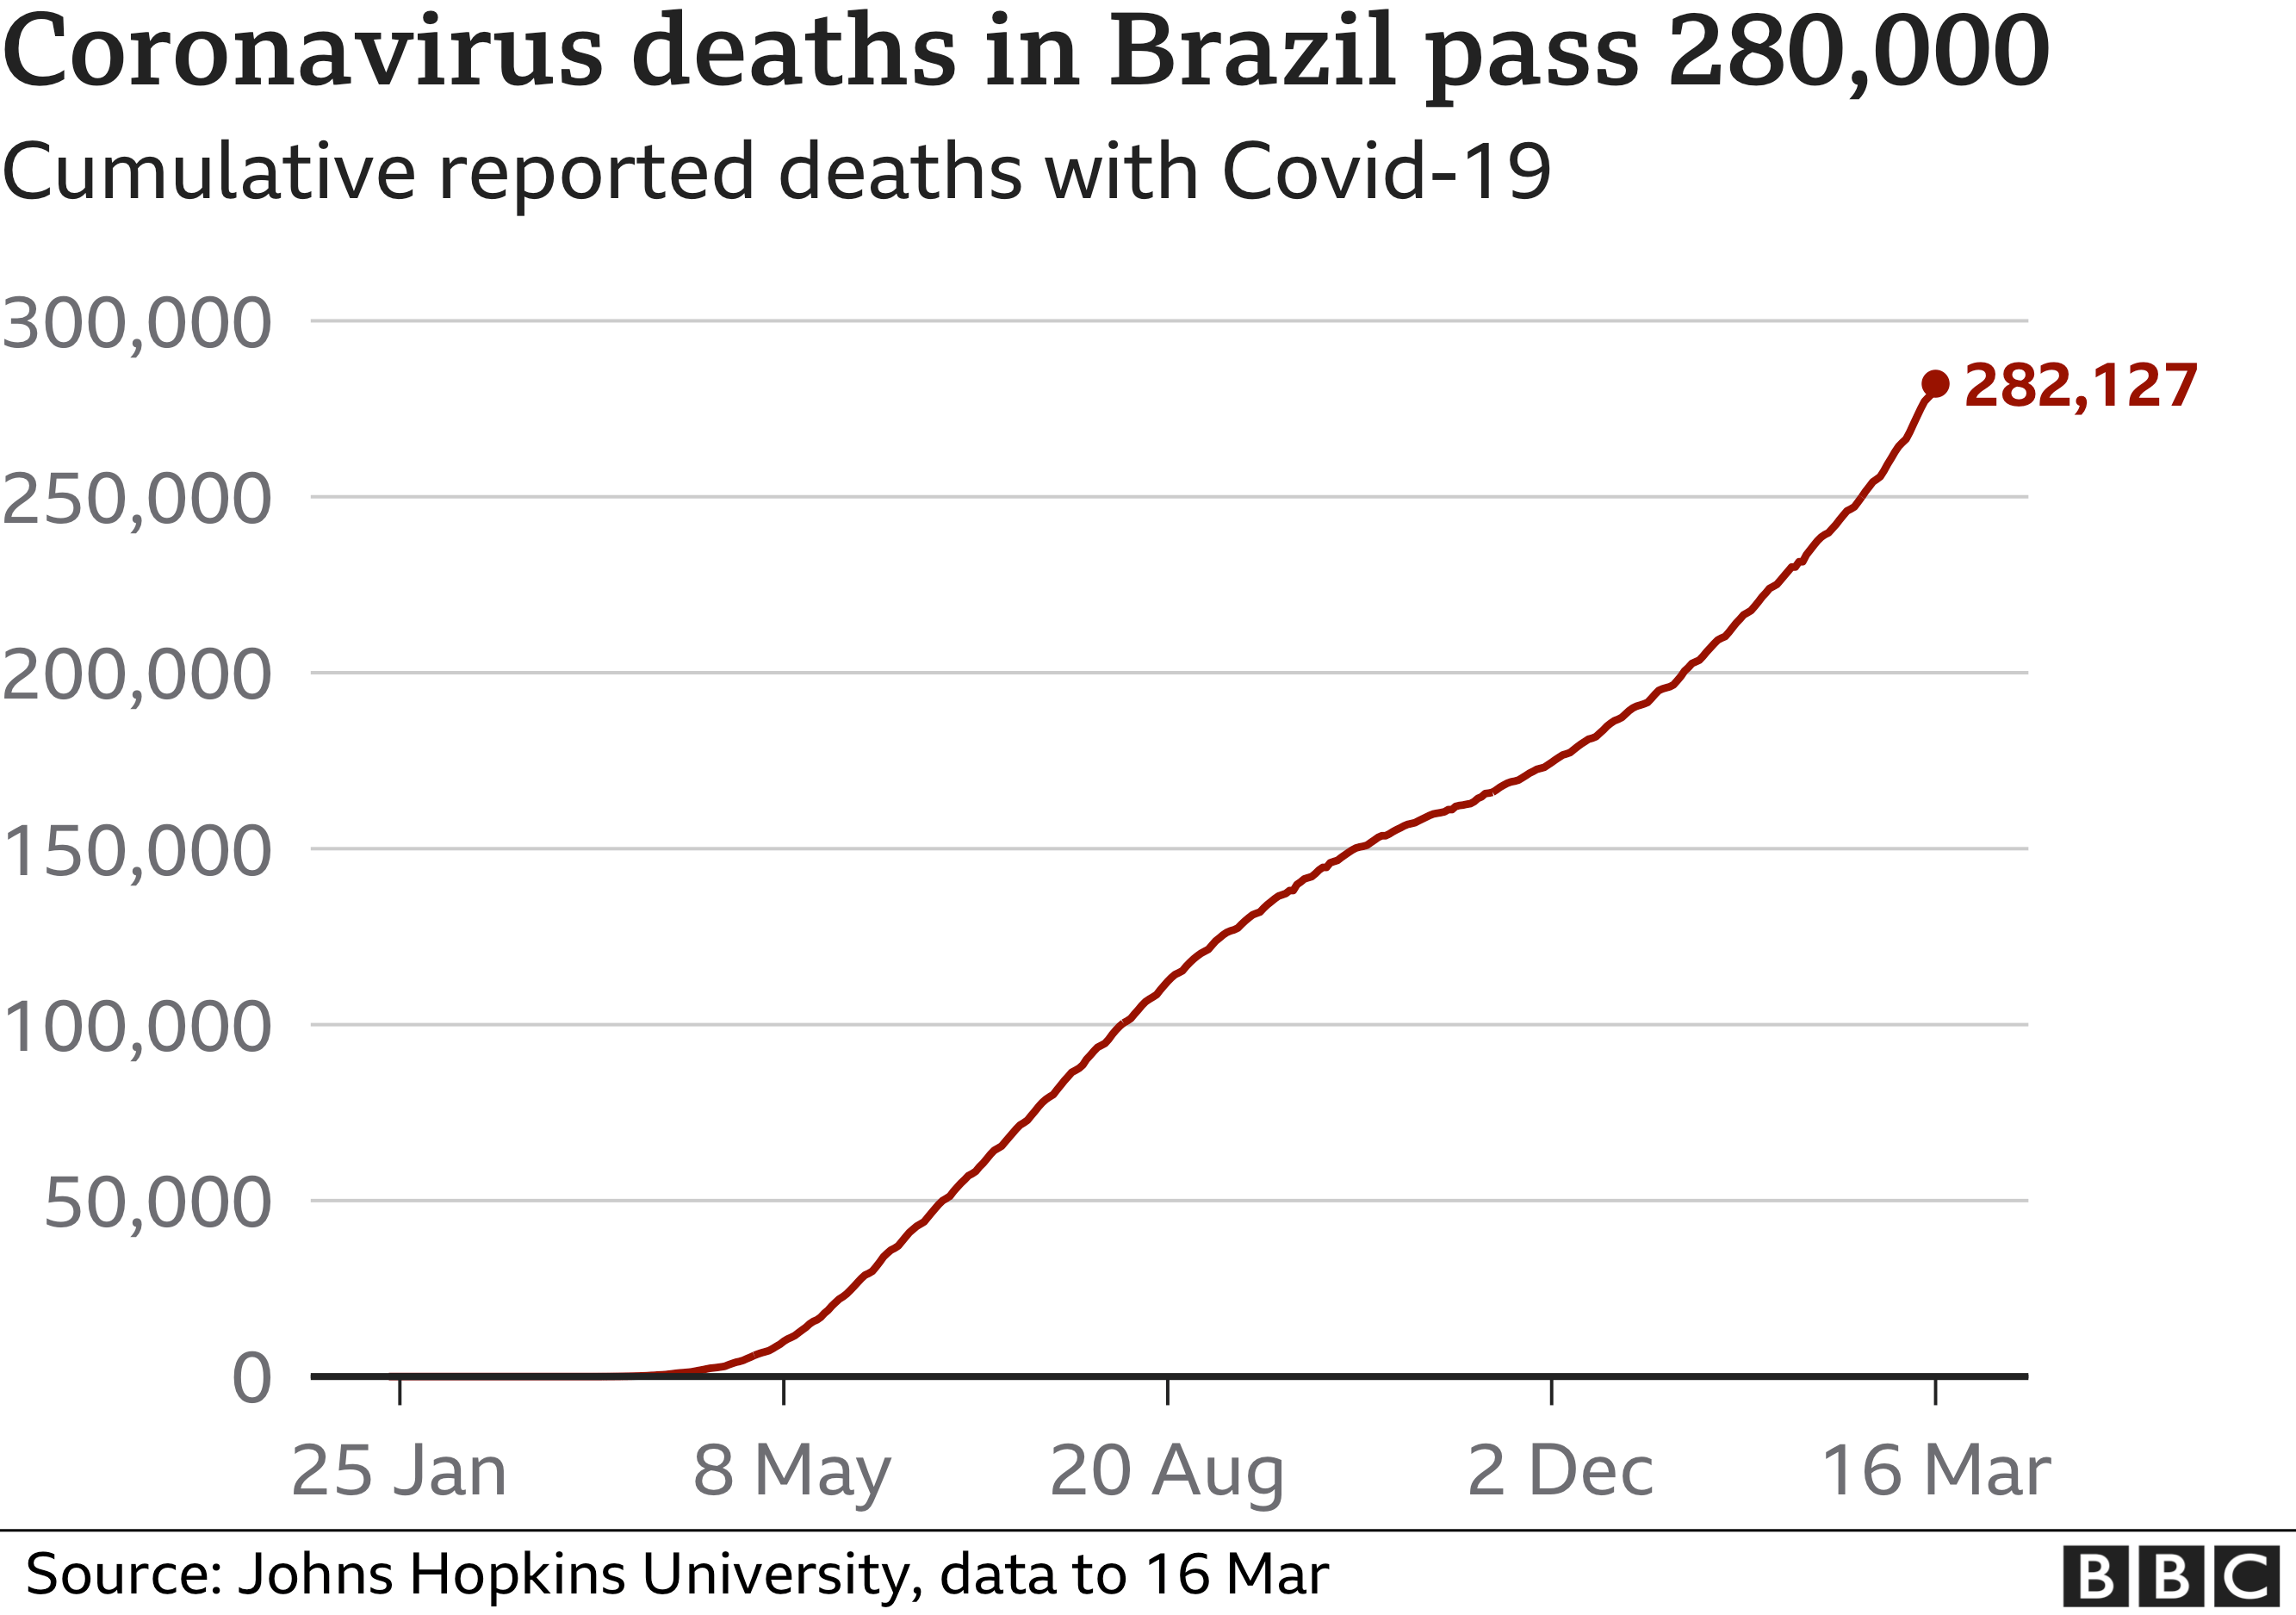 Chart showing the cumulative deaths